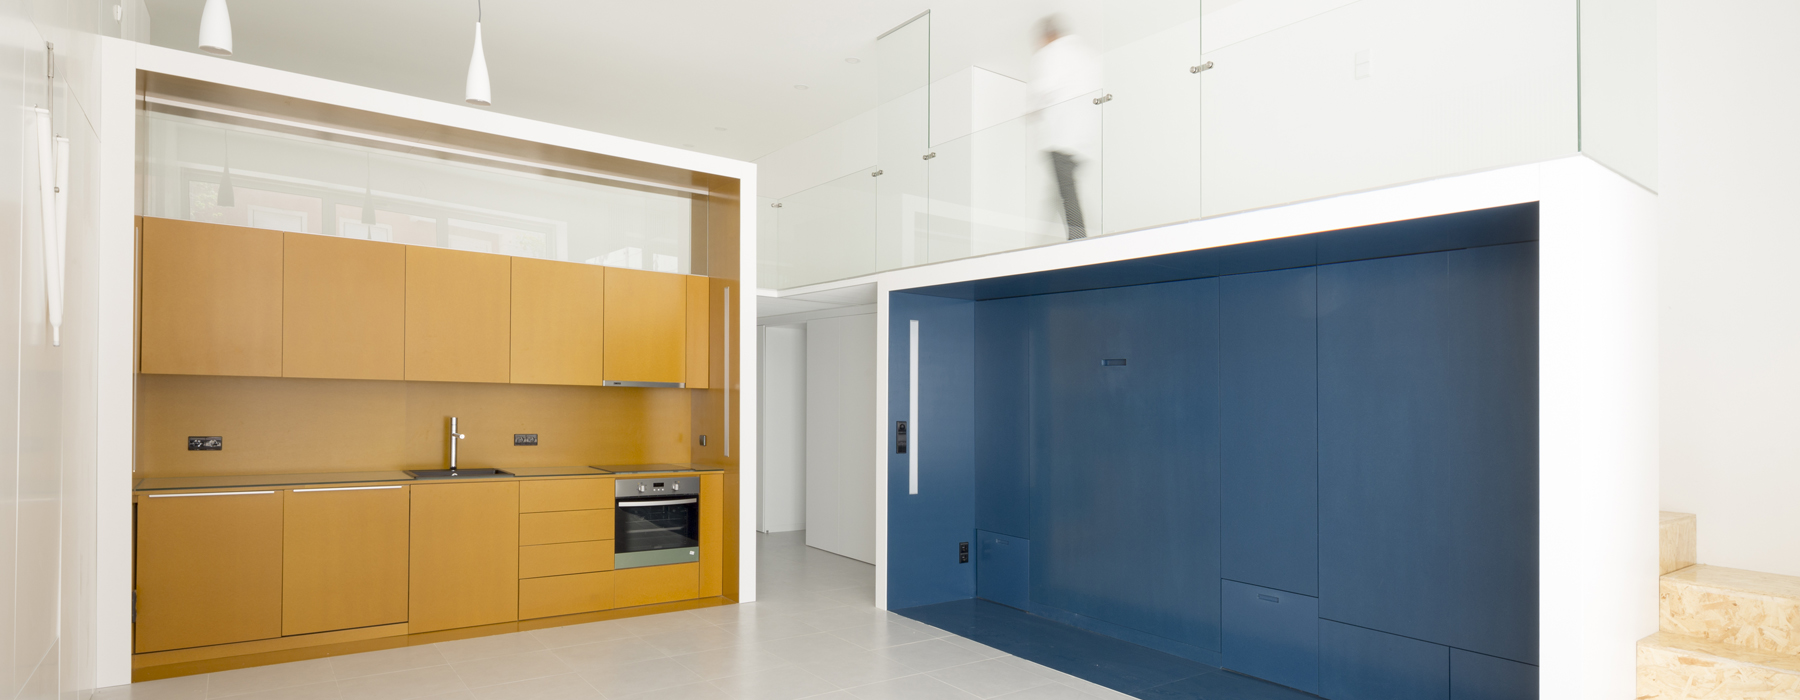 Apartment conversion features sleek space-saving modules